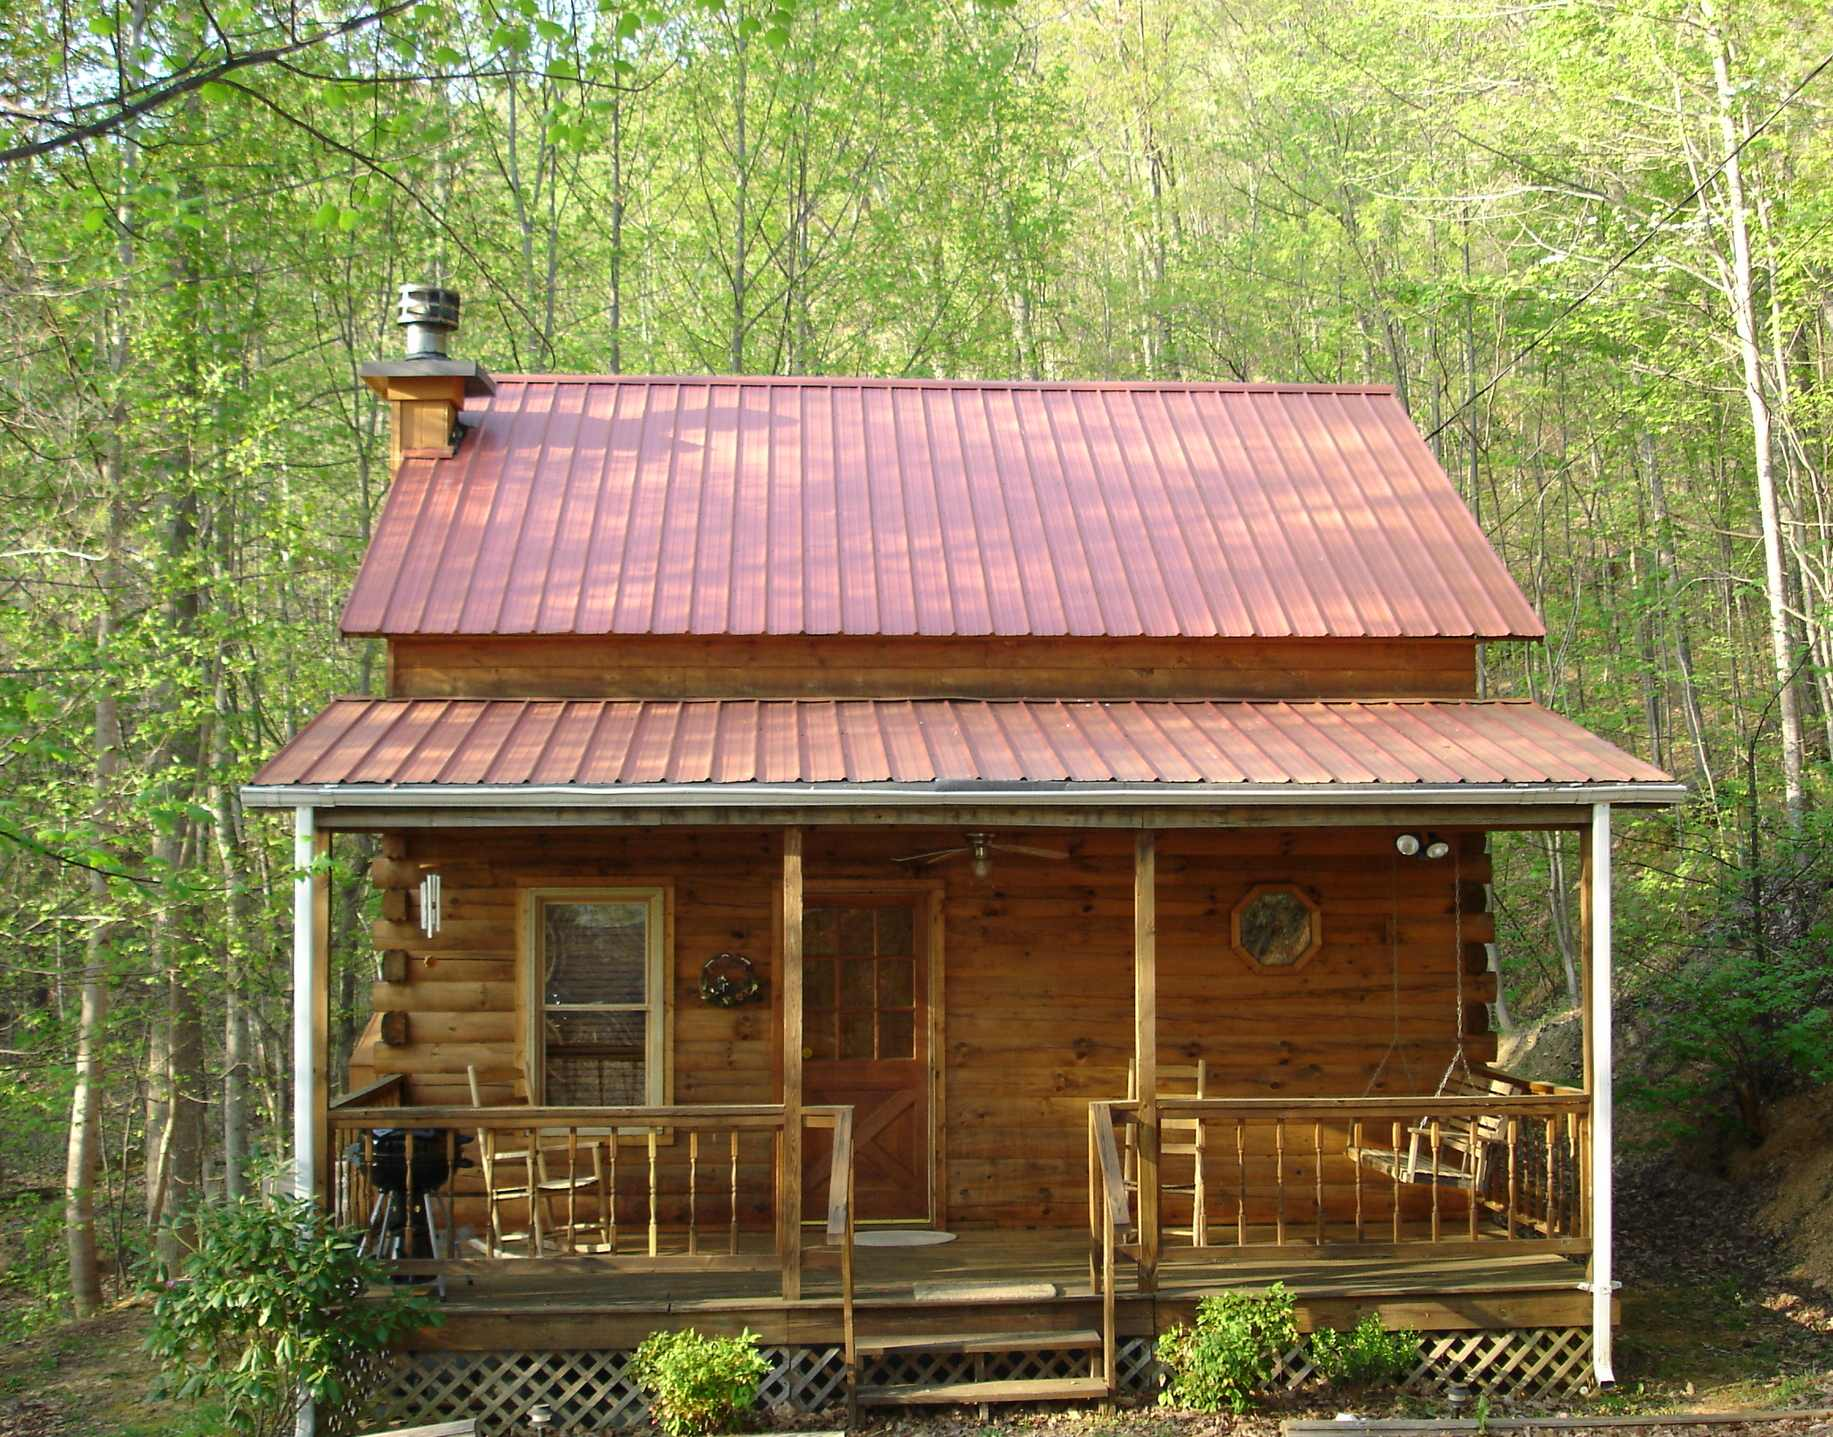 Rustic cabin plans small design and ideas for Rustic lodge